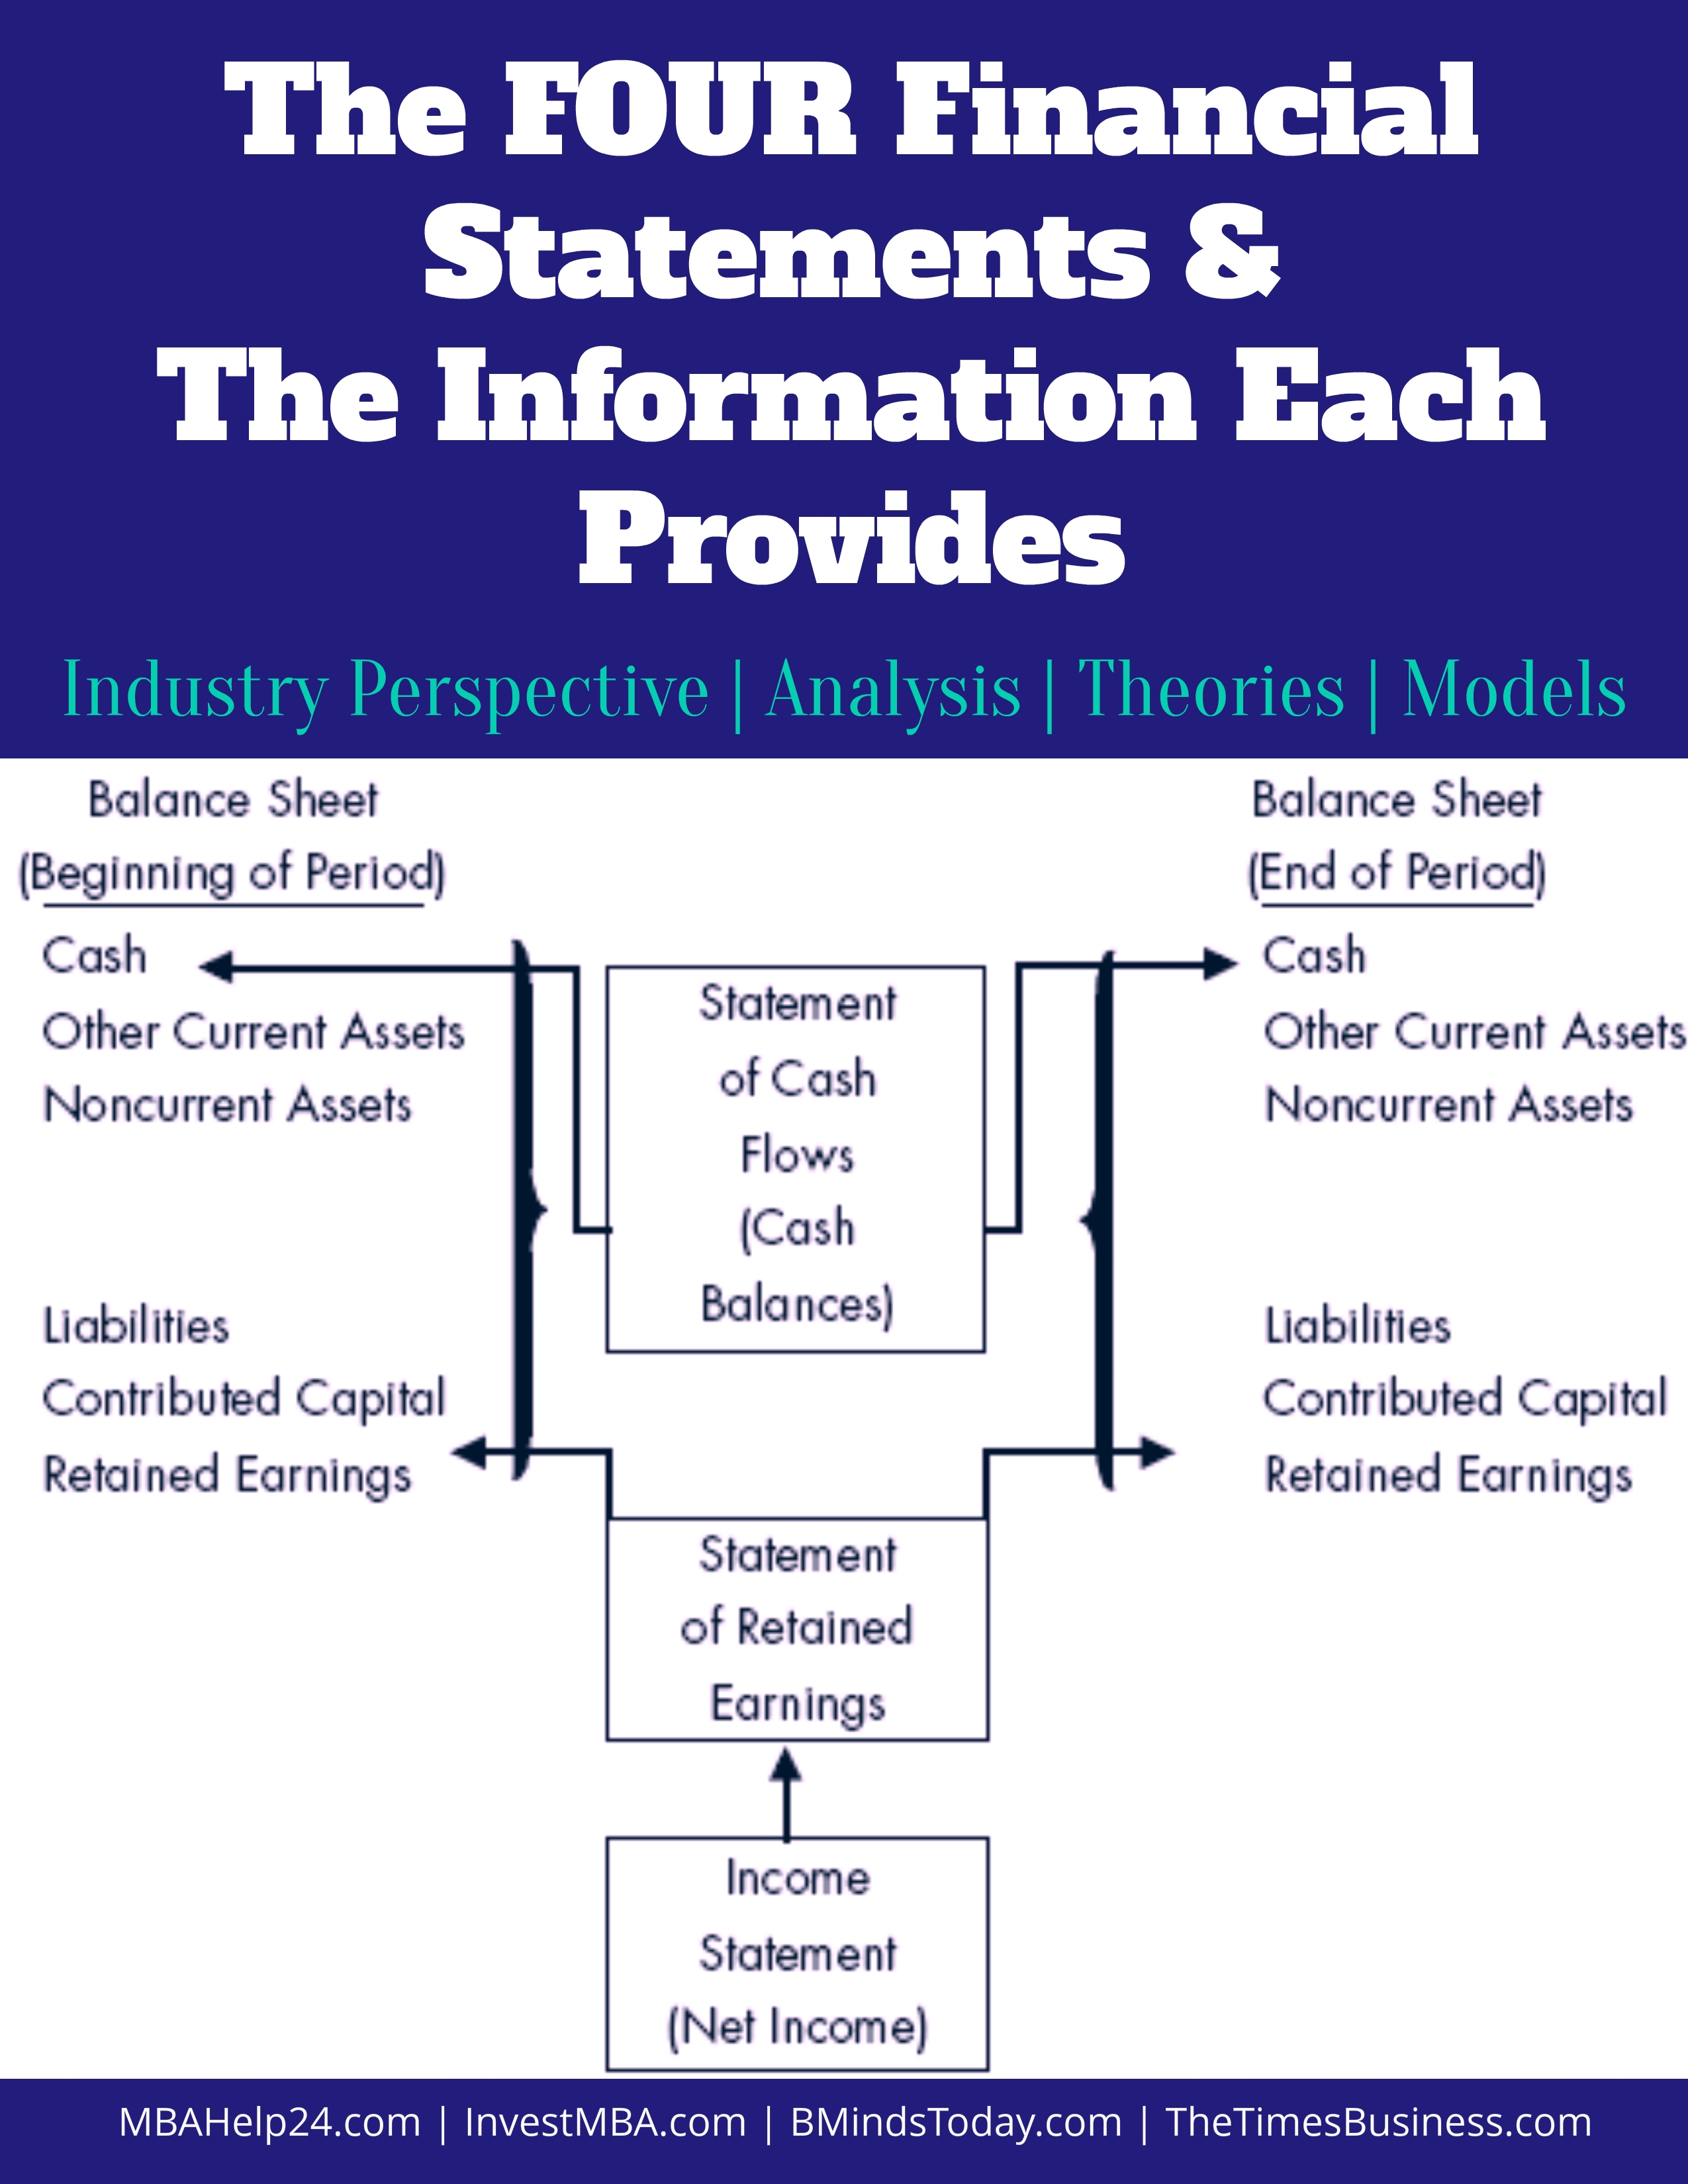 The Four Financial Statements and the Information Each Provides financial statements 4 Financial Statements | Balance Sheet | Retained Earnings | Cash Flows Four financial statements and the information each provides